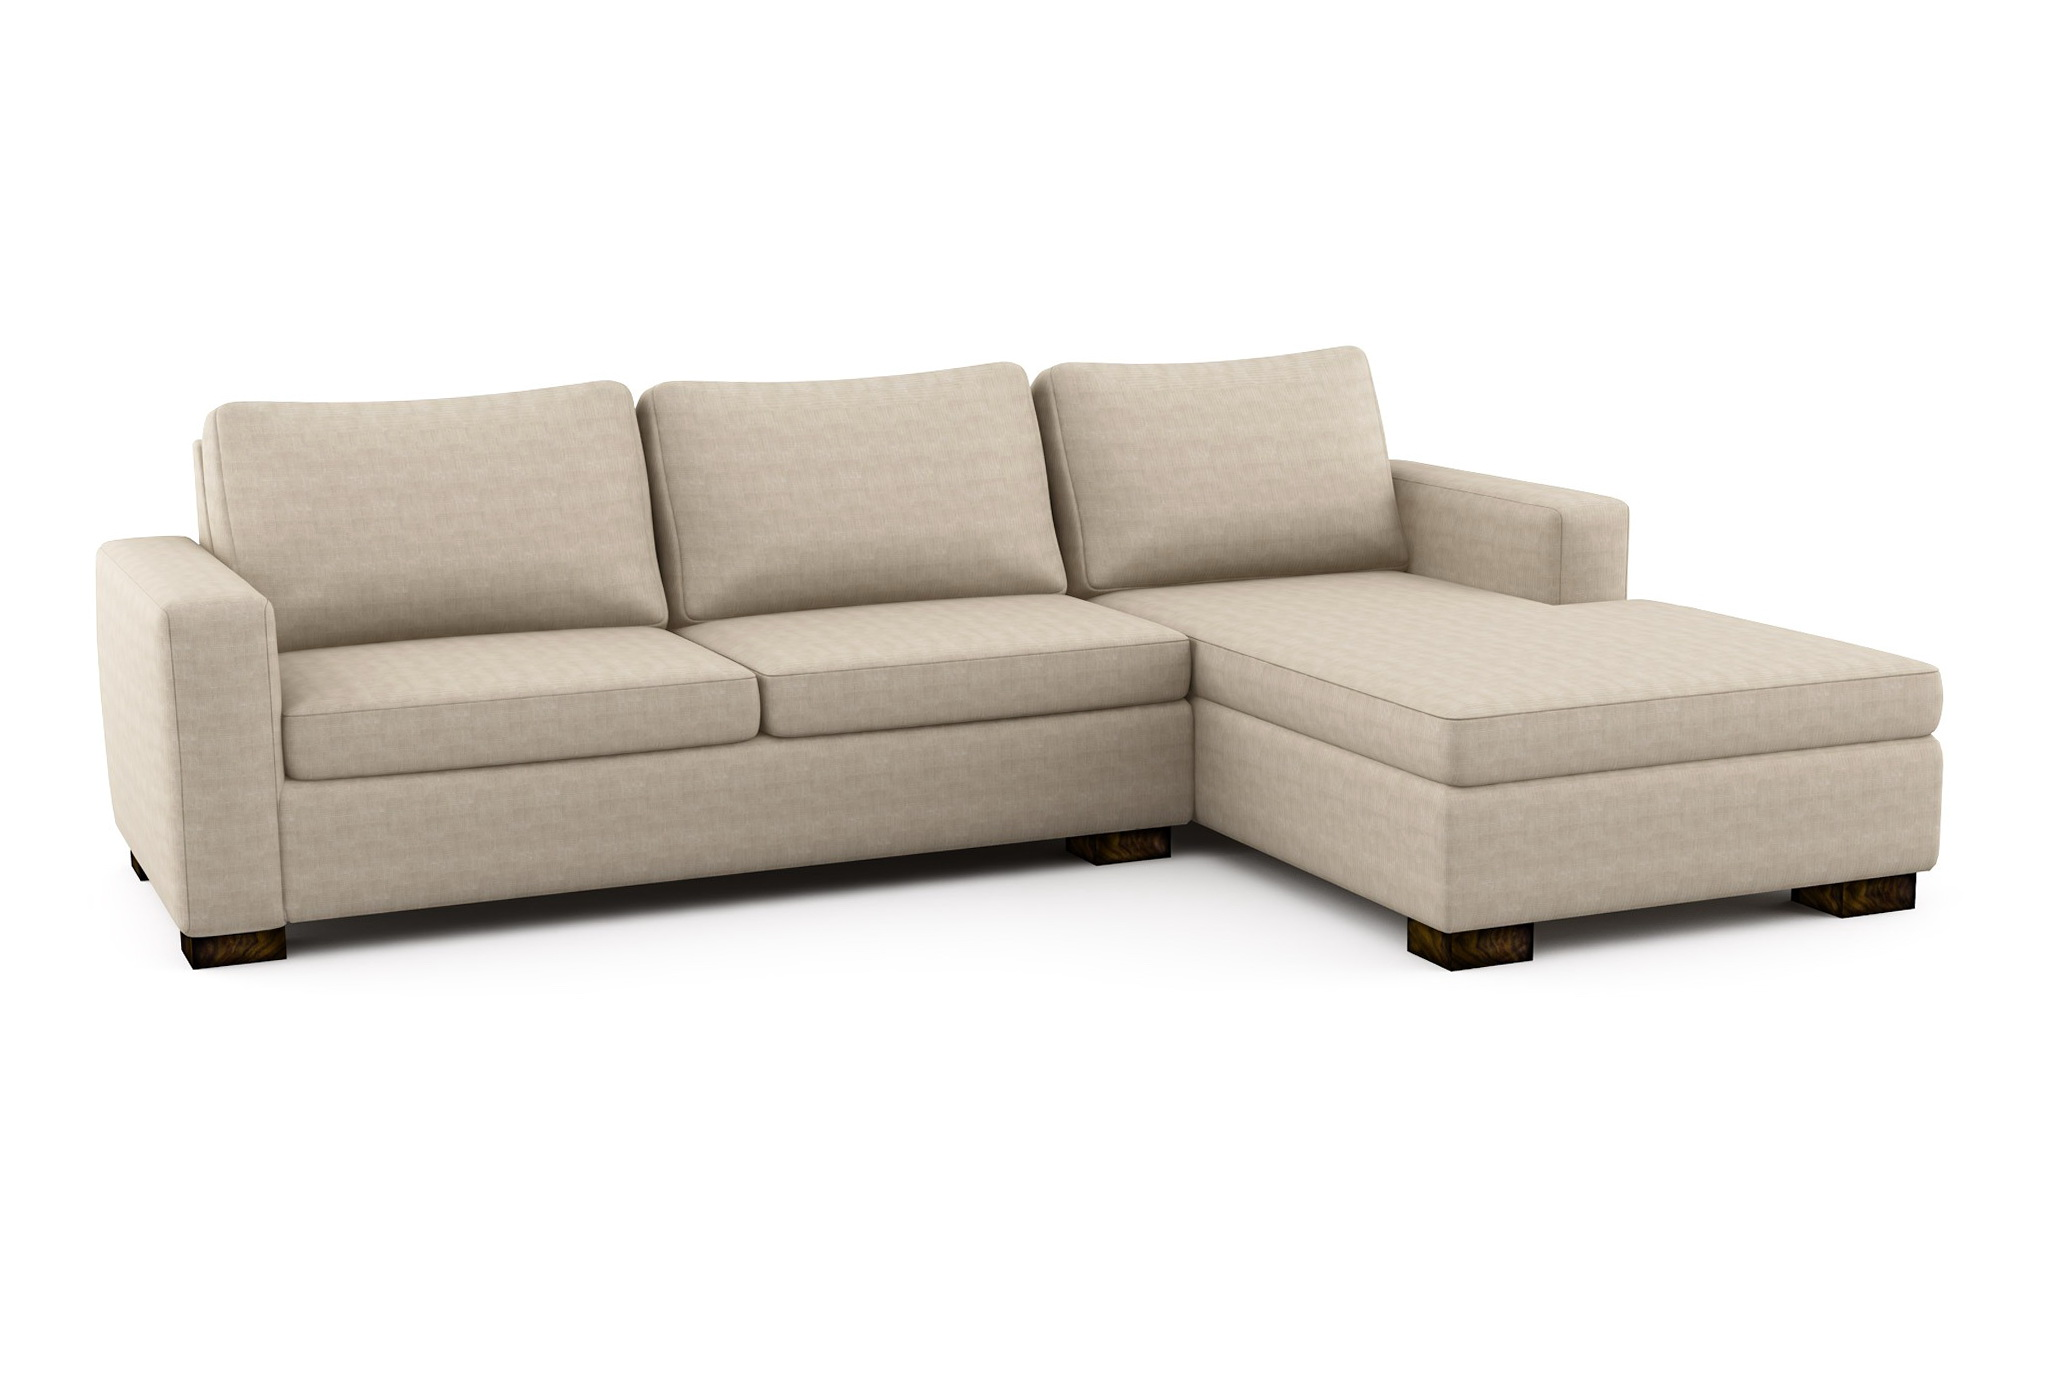 Sectional Sleeper Sofas With Chaise